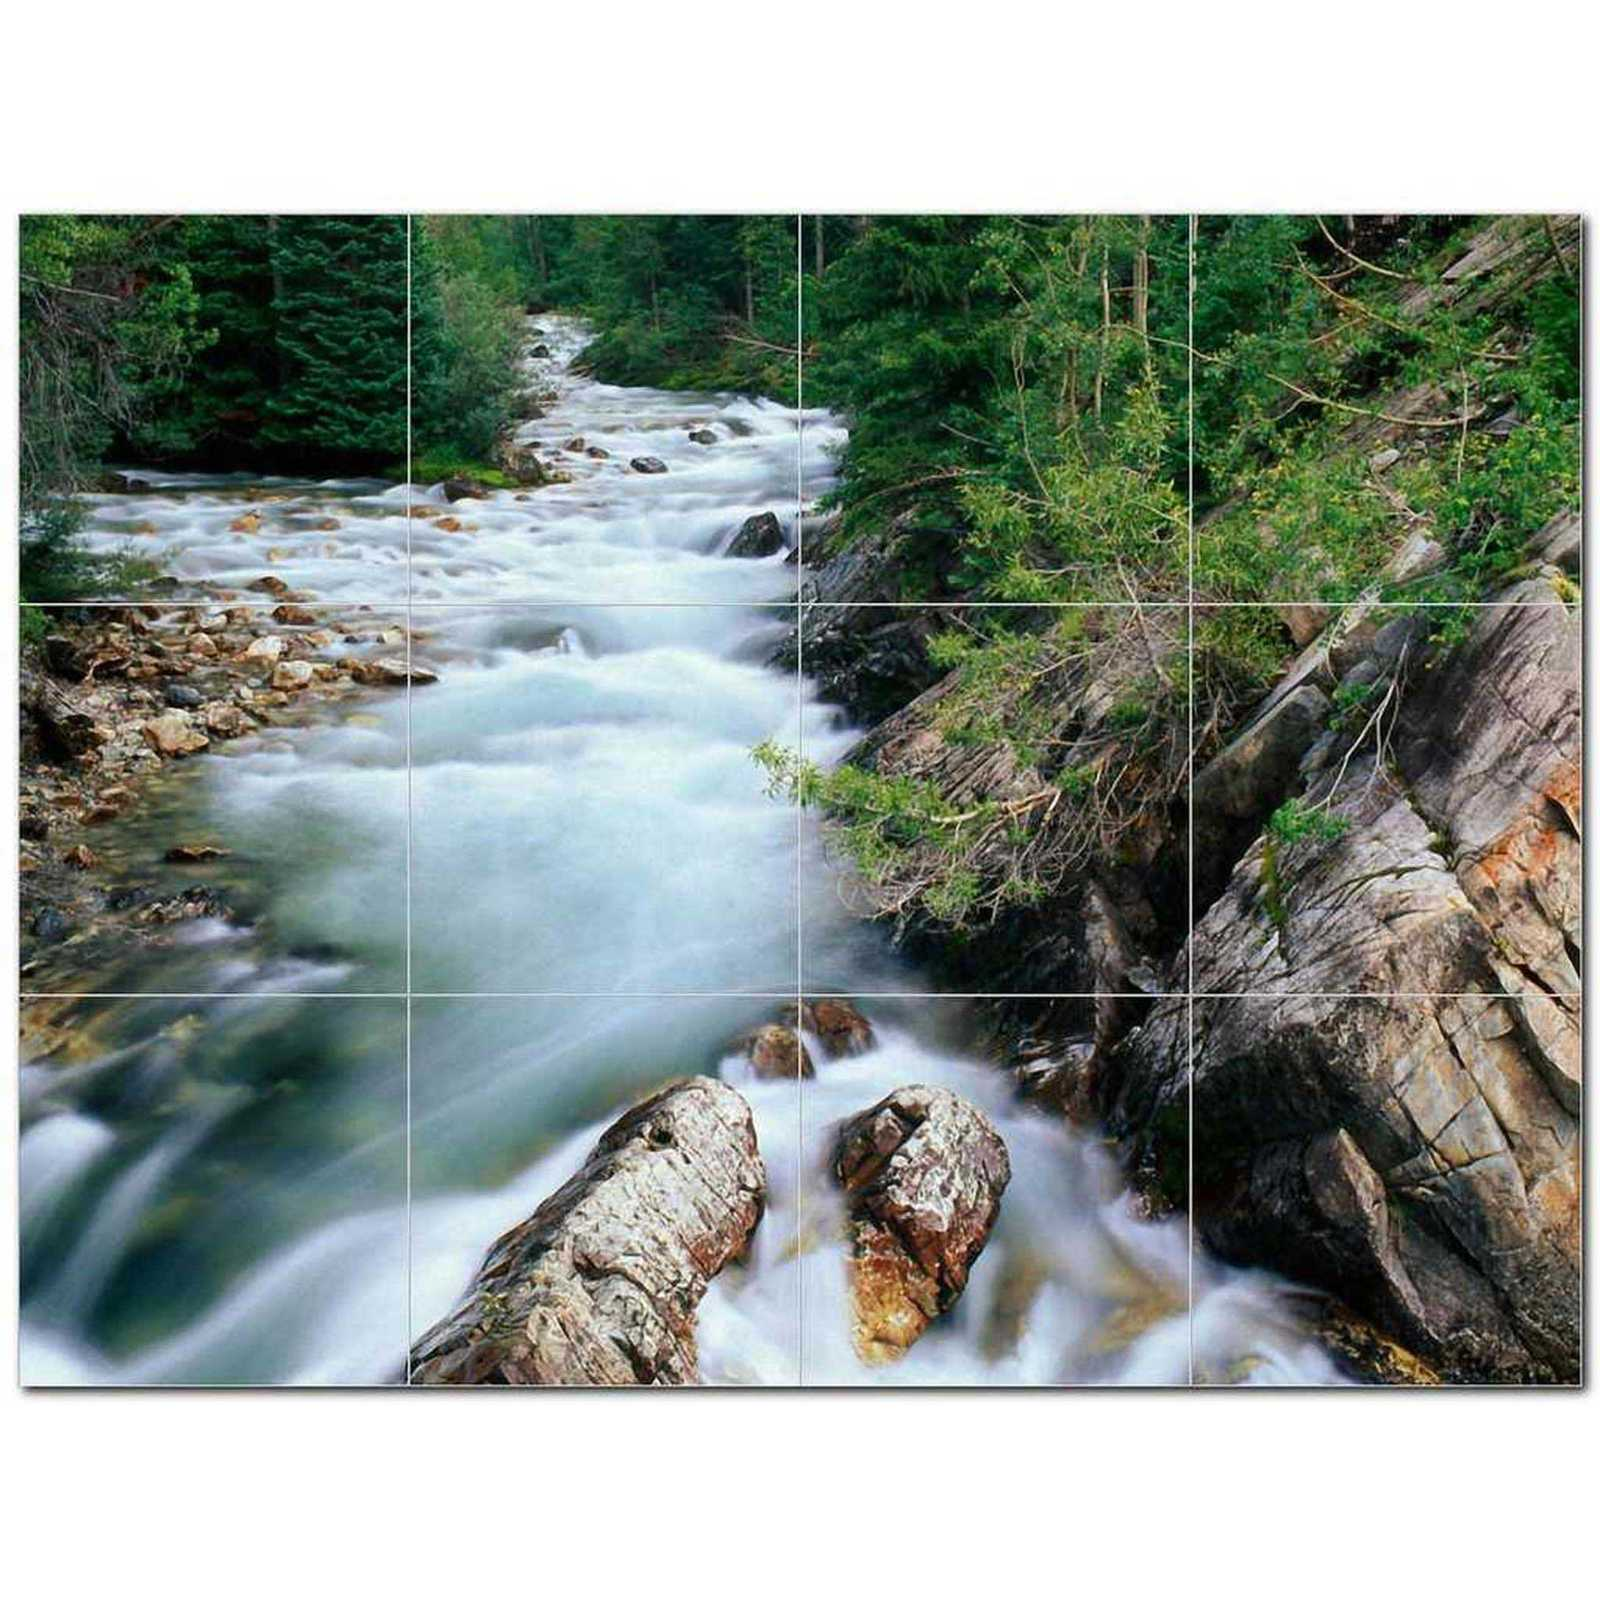 Primary image for River Picture Ceramic Tile Mural Kitchen Backsplash Bathroom Shower BAZ405741